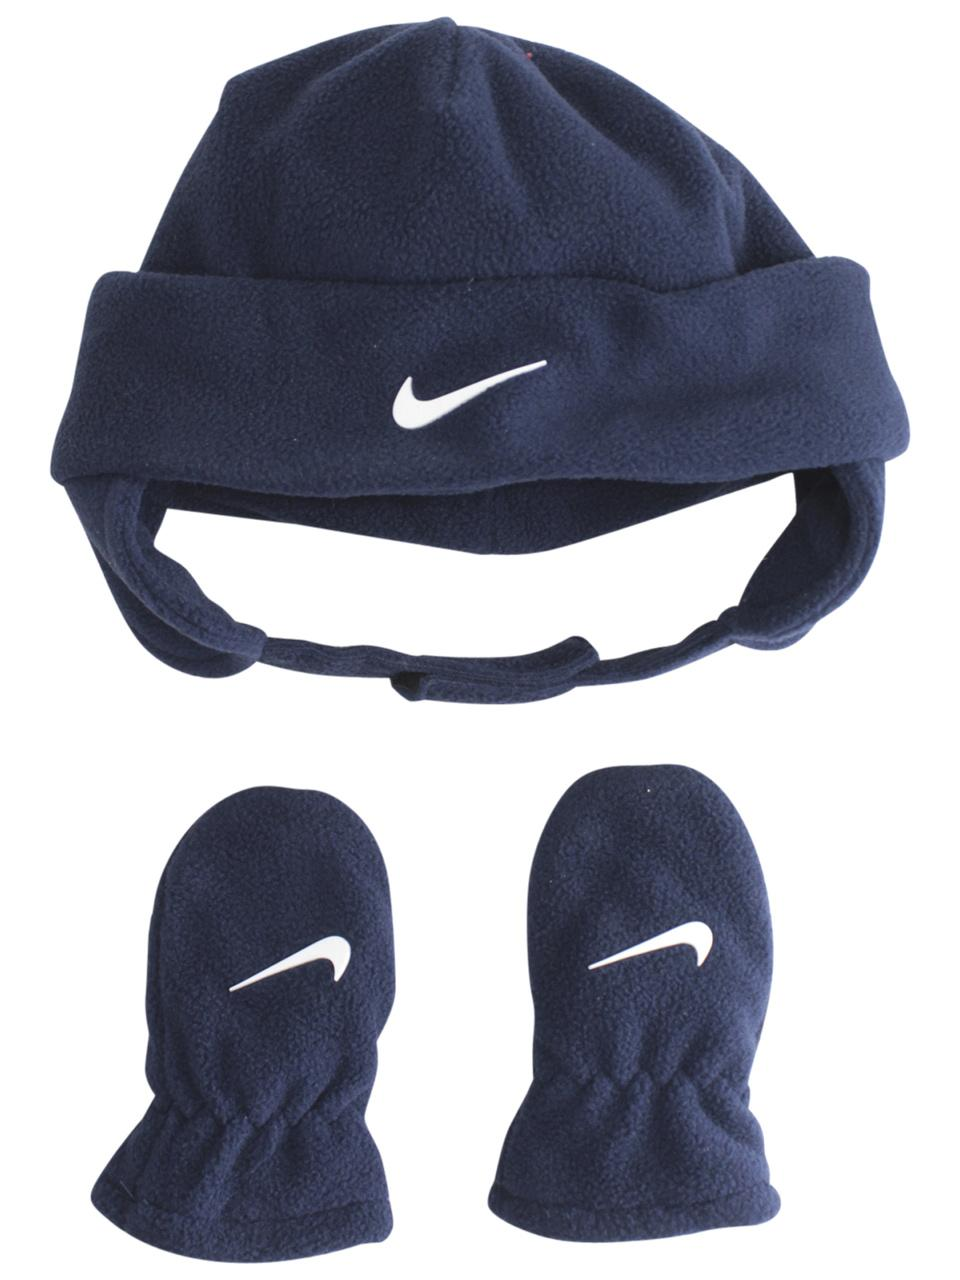 9eeeb87f36e9 Nike Infant Toddler Boy s 2-Piece Swoosh Fleece Hat   Mittens Set